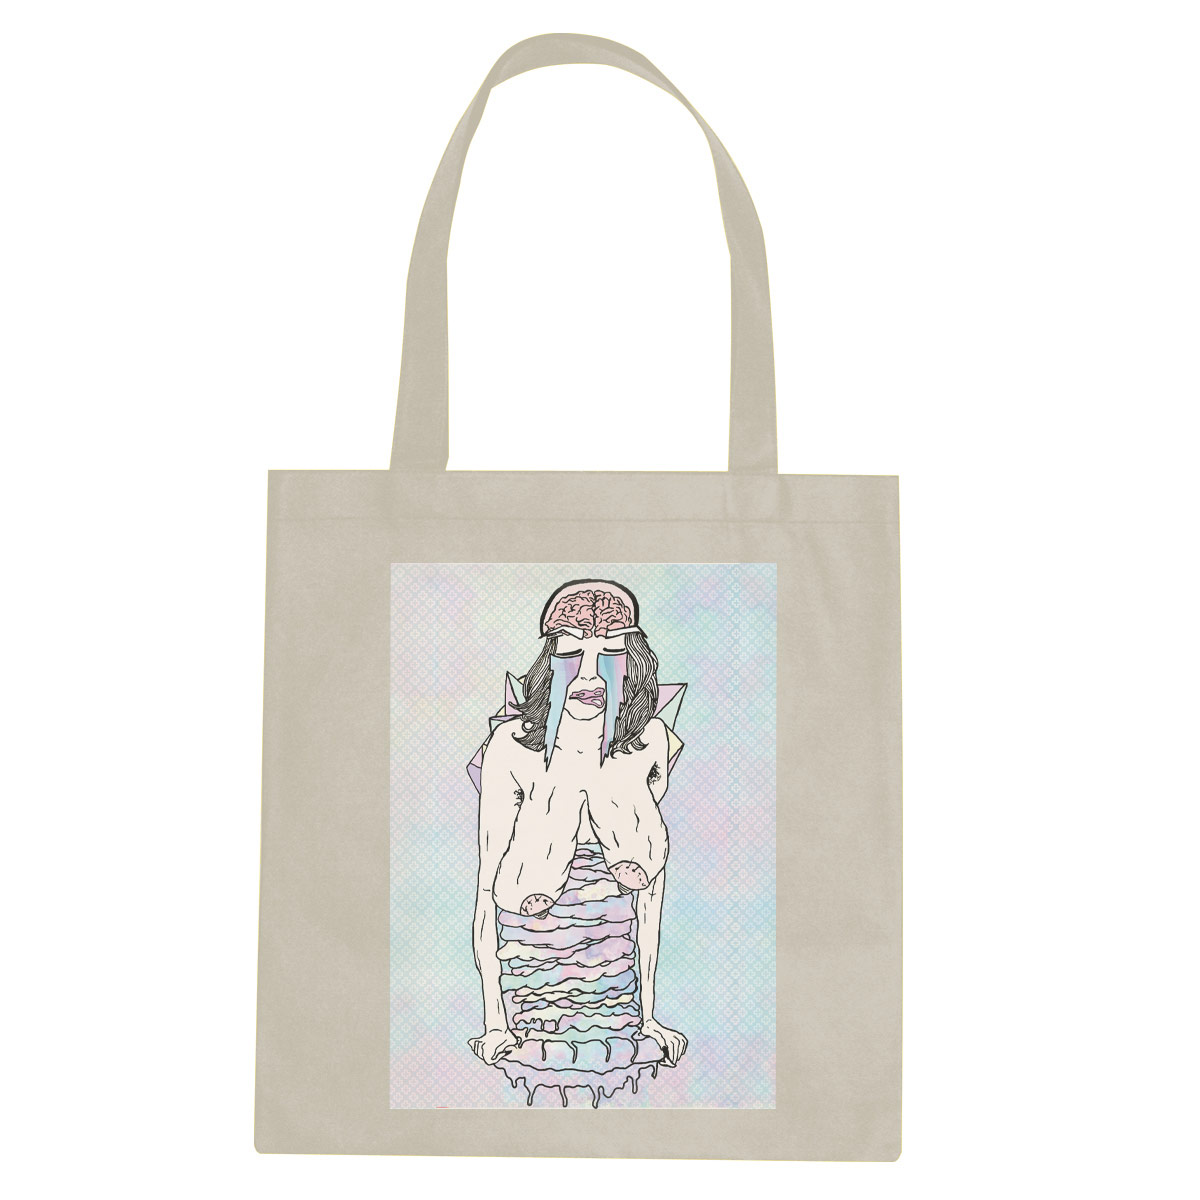 Drip tote bag  €14.99 Available in natural